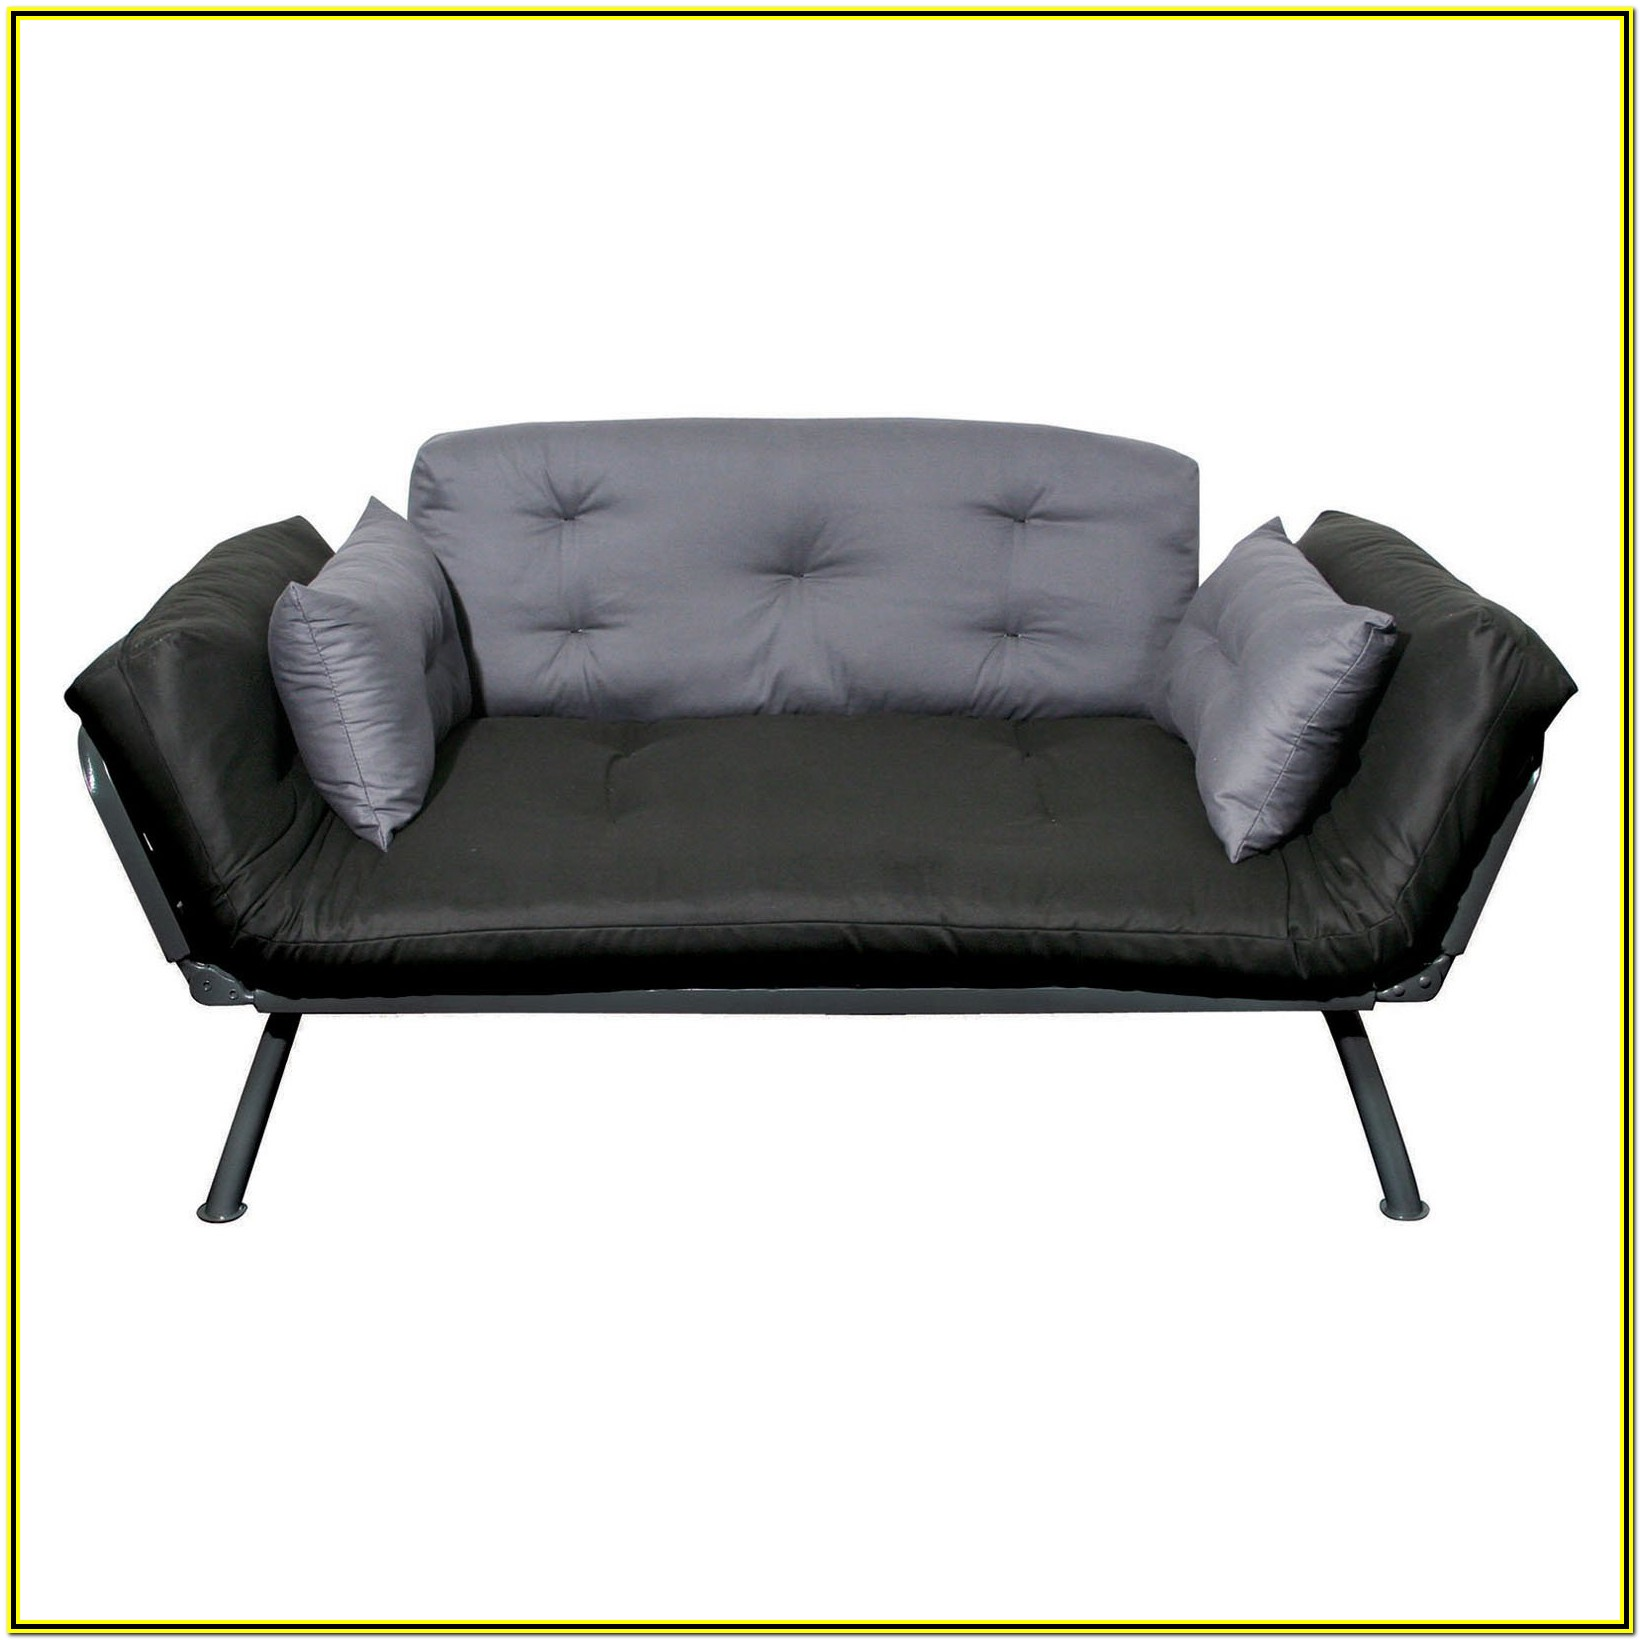 American Furniture Warehouse Sofa Beds